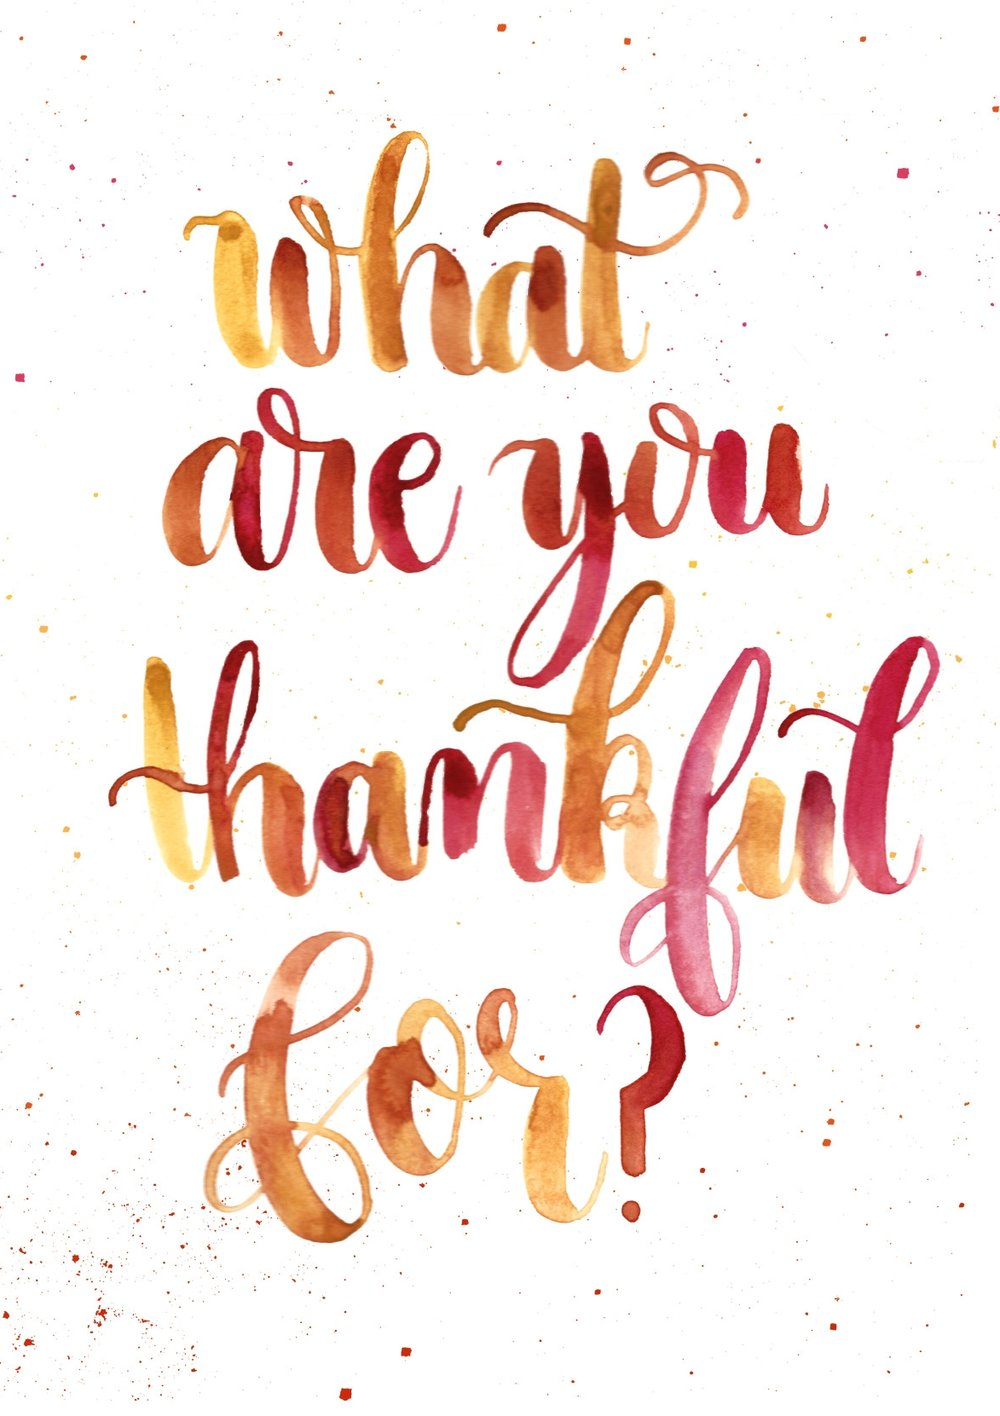 What Are You Thankful For 5x7.jpg